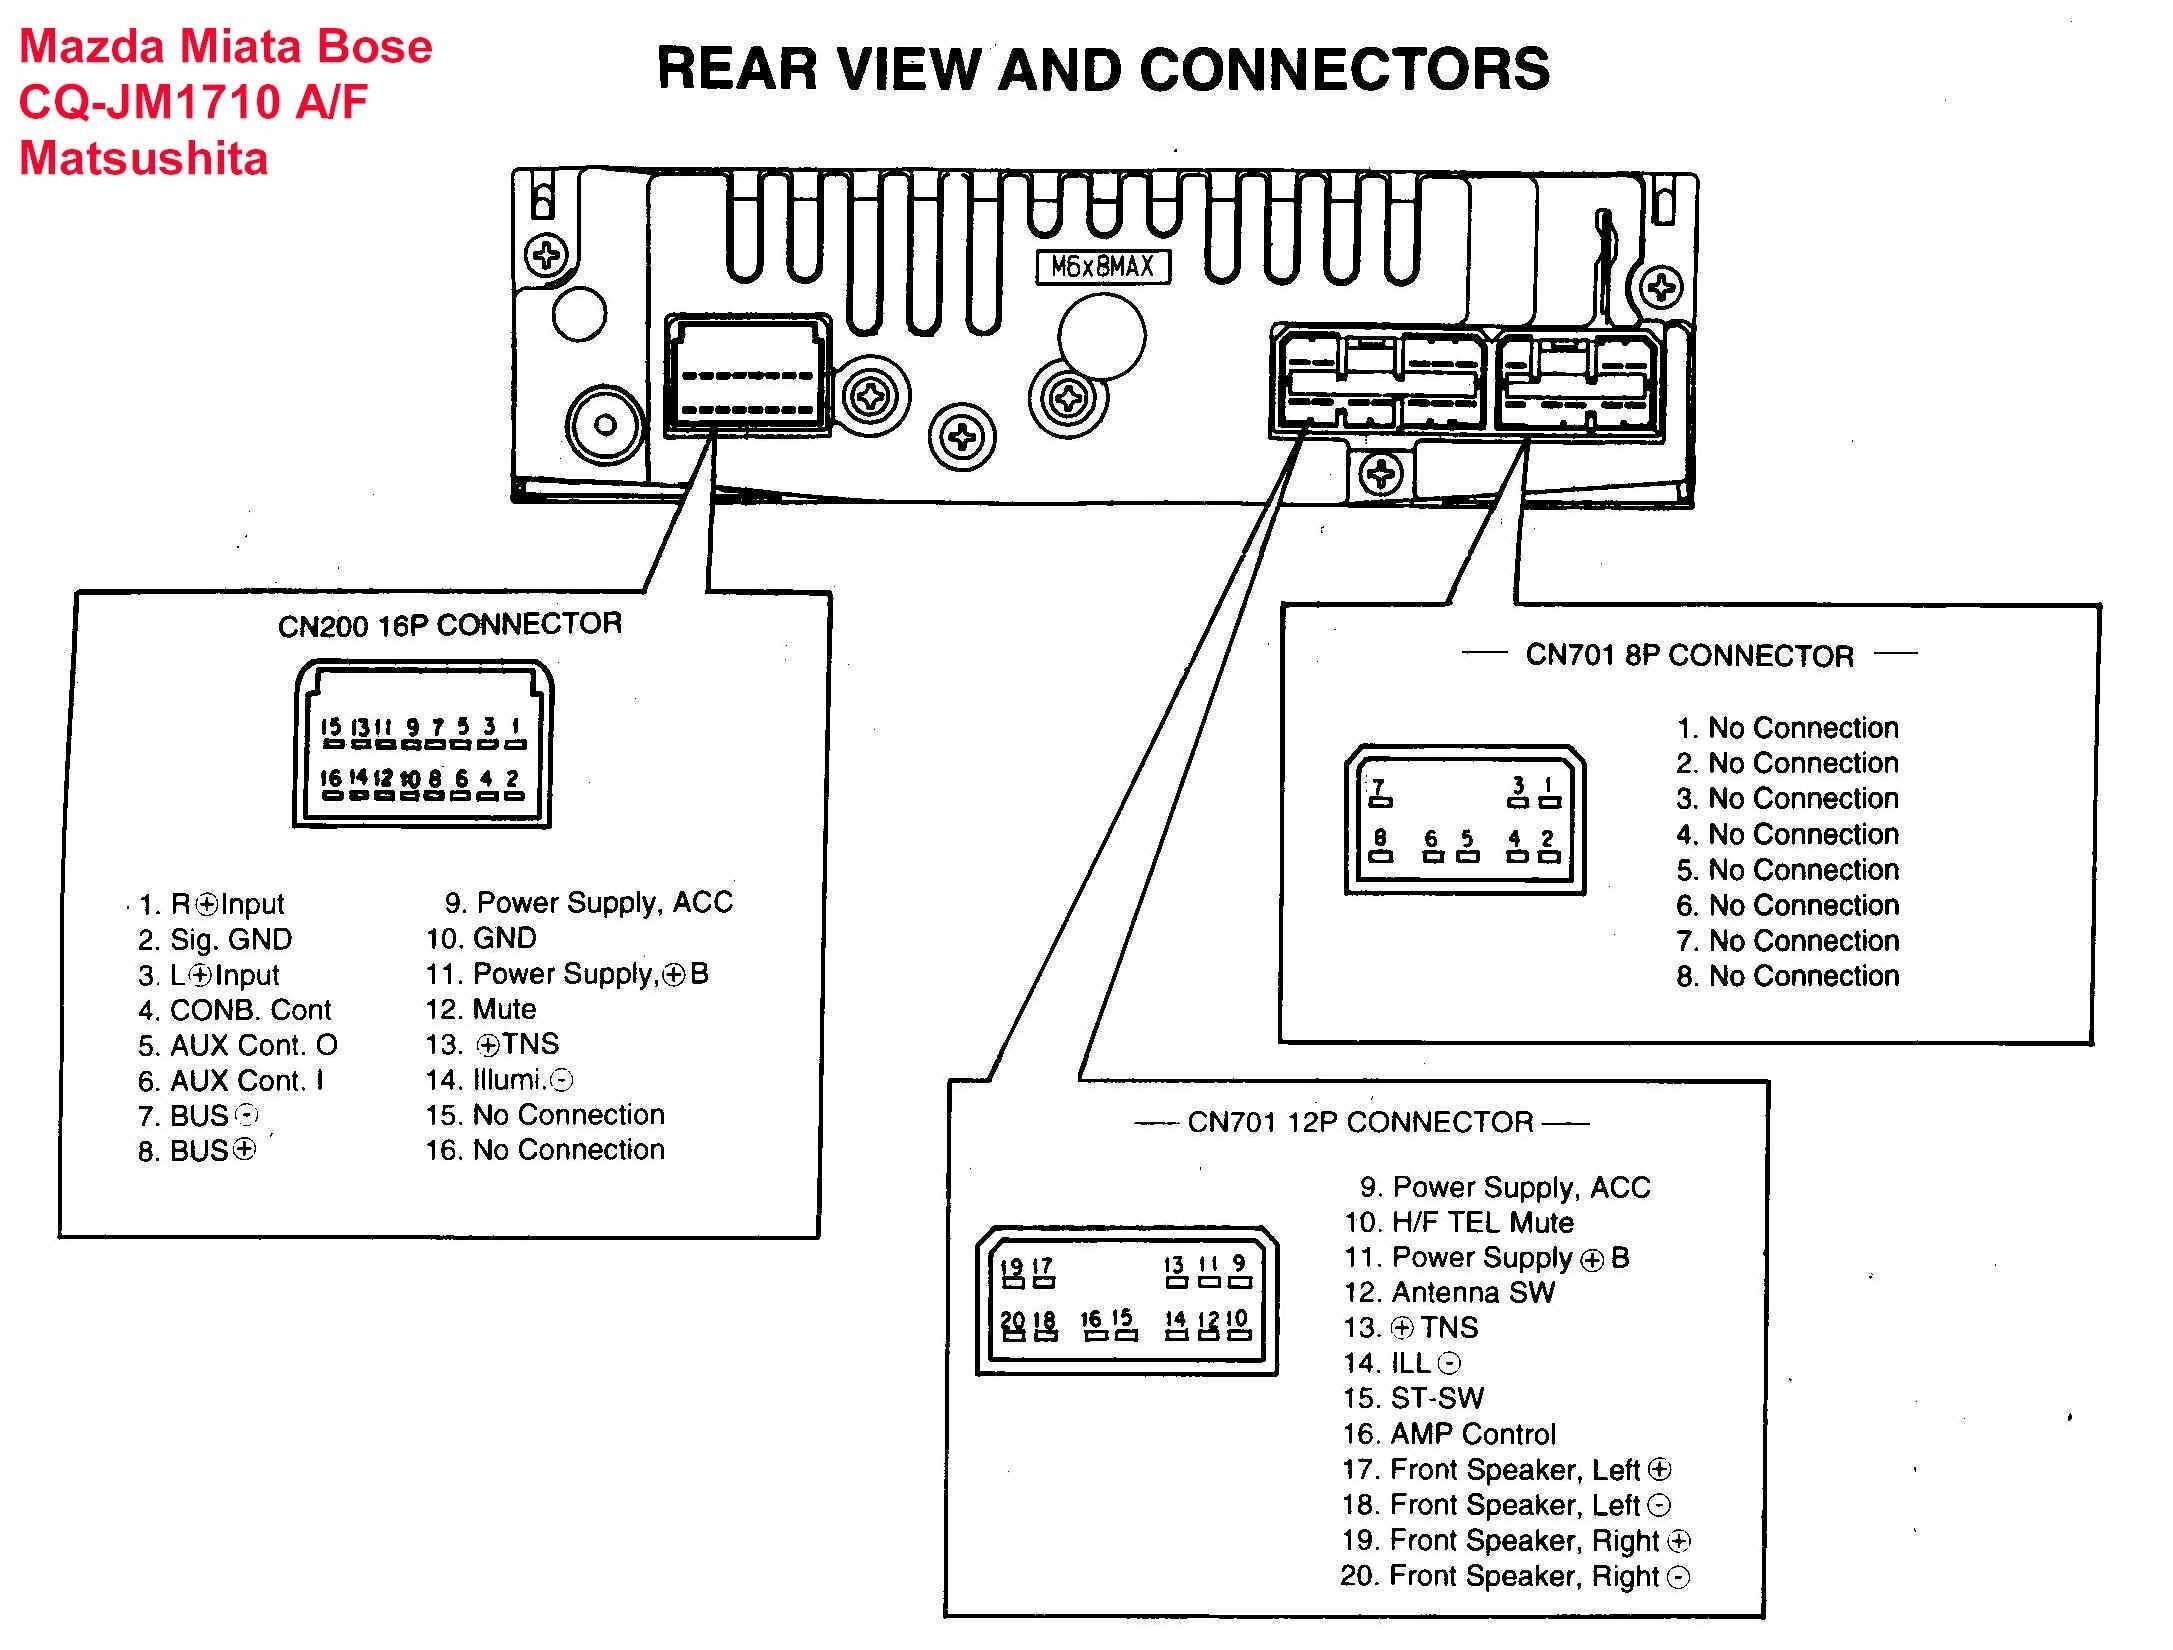 mazda bt 50 stereo wiring diagram gas water heater mnl 3427 b2500 wl manual pdf 2019 ebook library